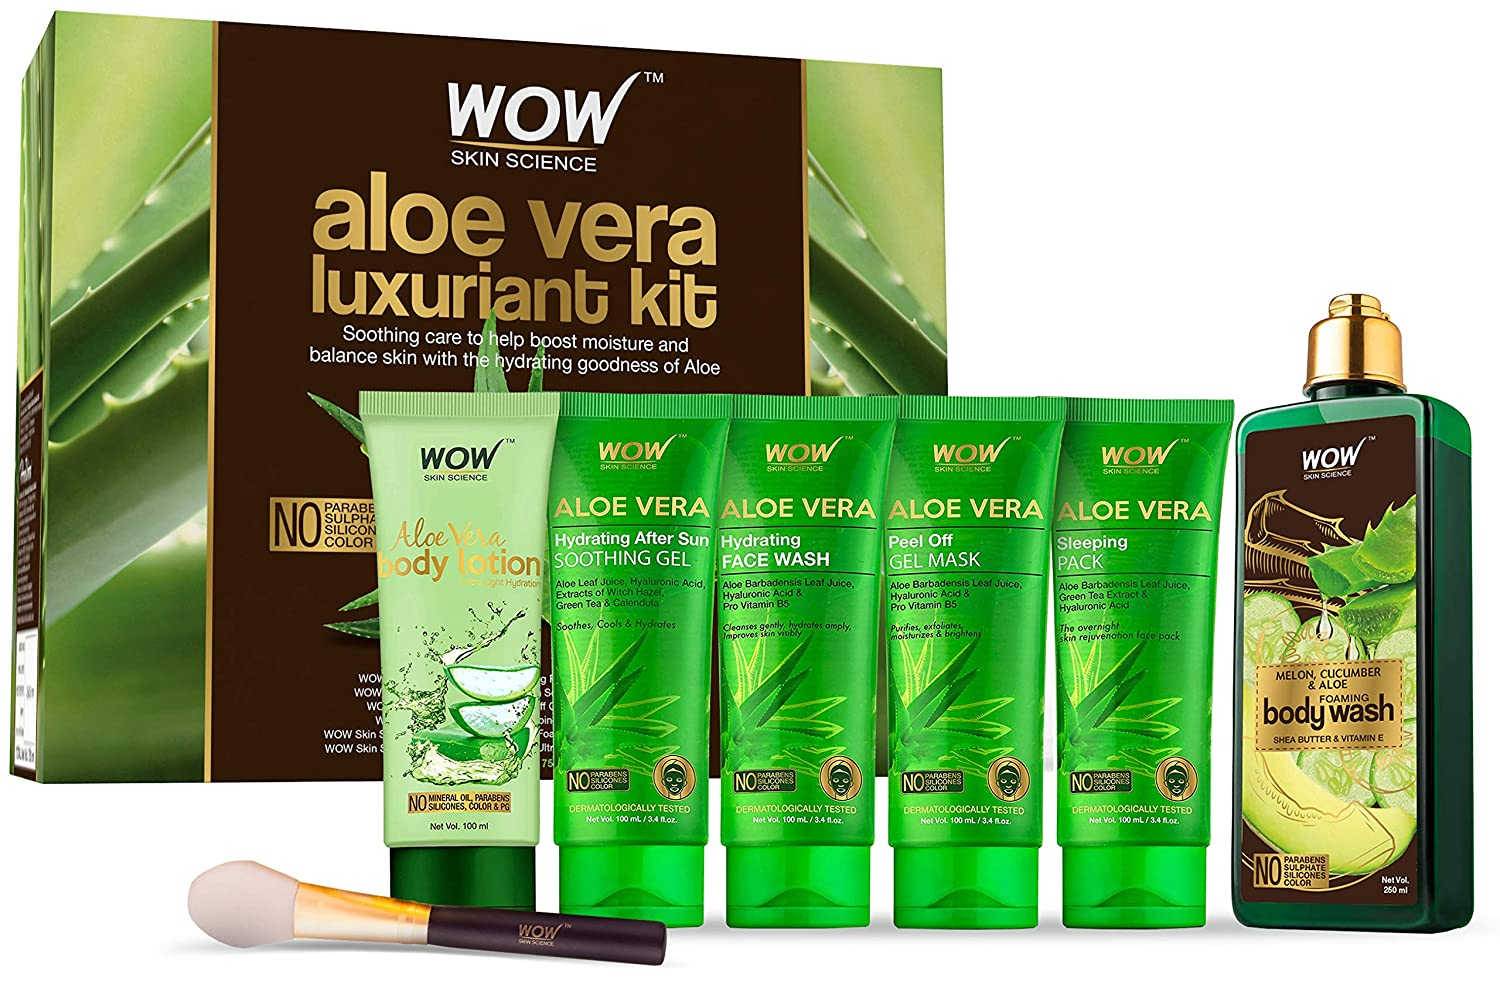 Wow Luxuriant Aloe Vera Kit - Aloe Vera Body Lotion, Soothing Gel, Face Wash, Peel off Mask, Sleeping Pack & Body Wash